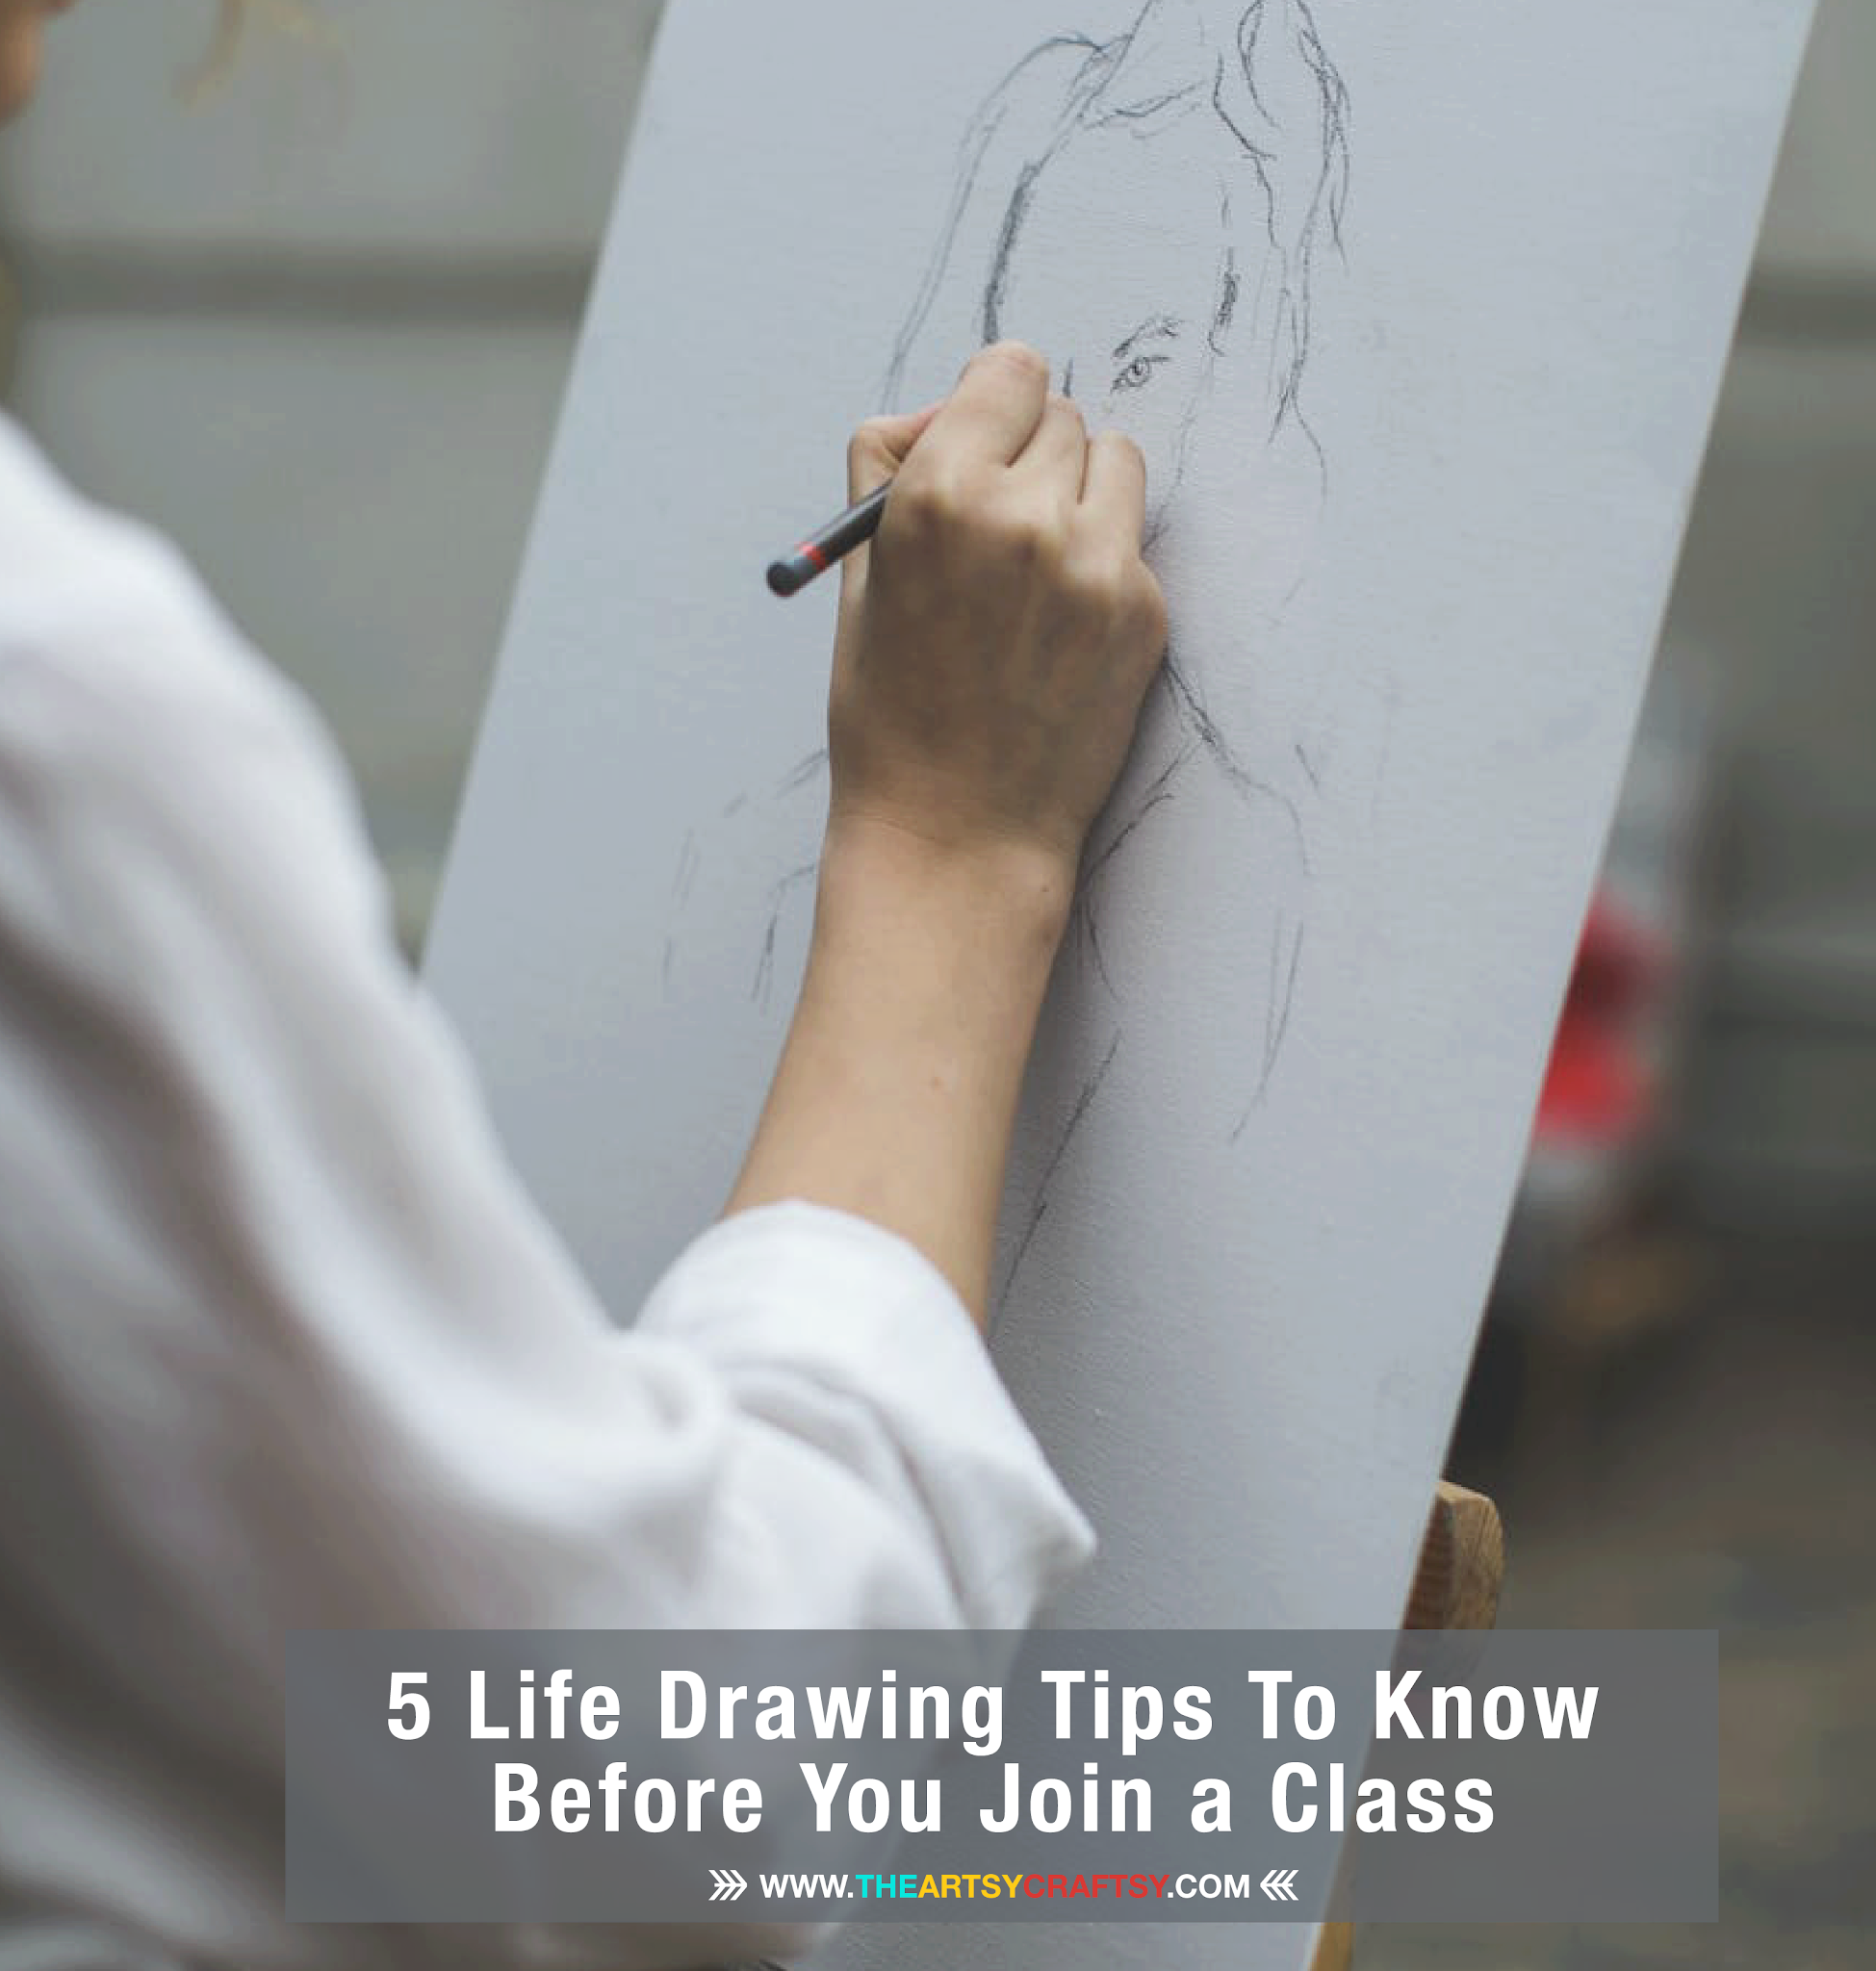 5 Life Drawing Tips To Know Before You Join a Class